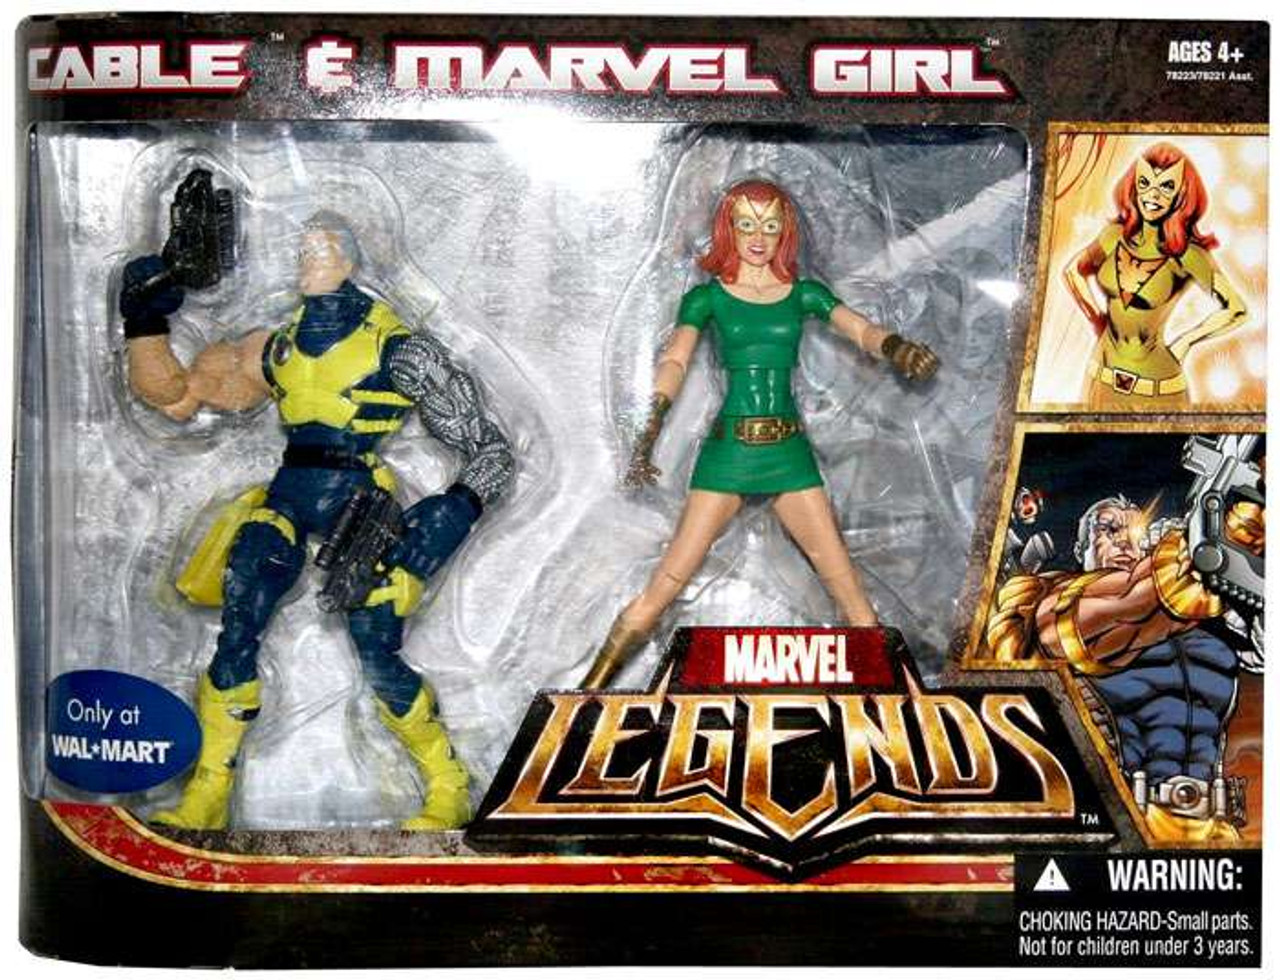 Marvel Legends Cable & Marvel Girl Exclusive Action Figure 2-Pack